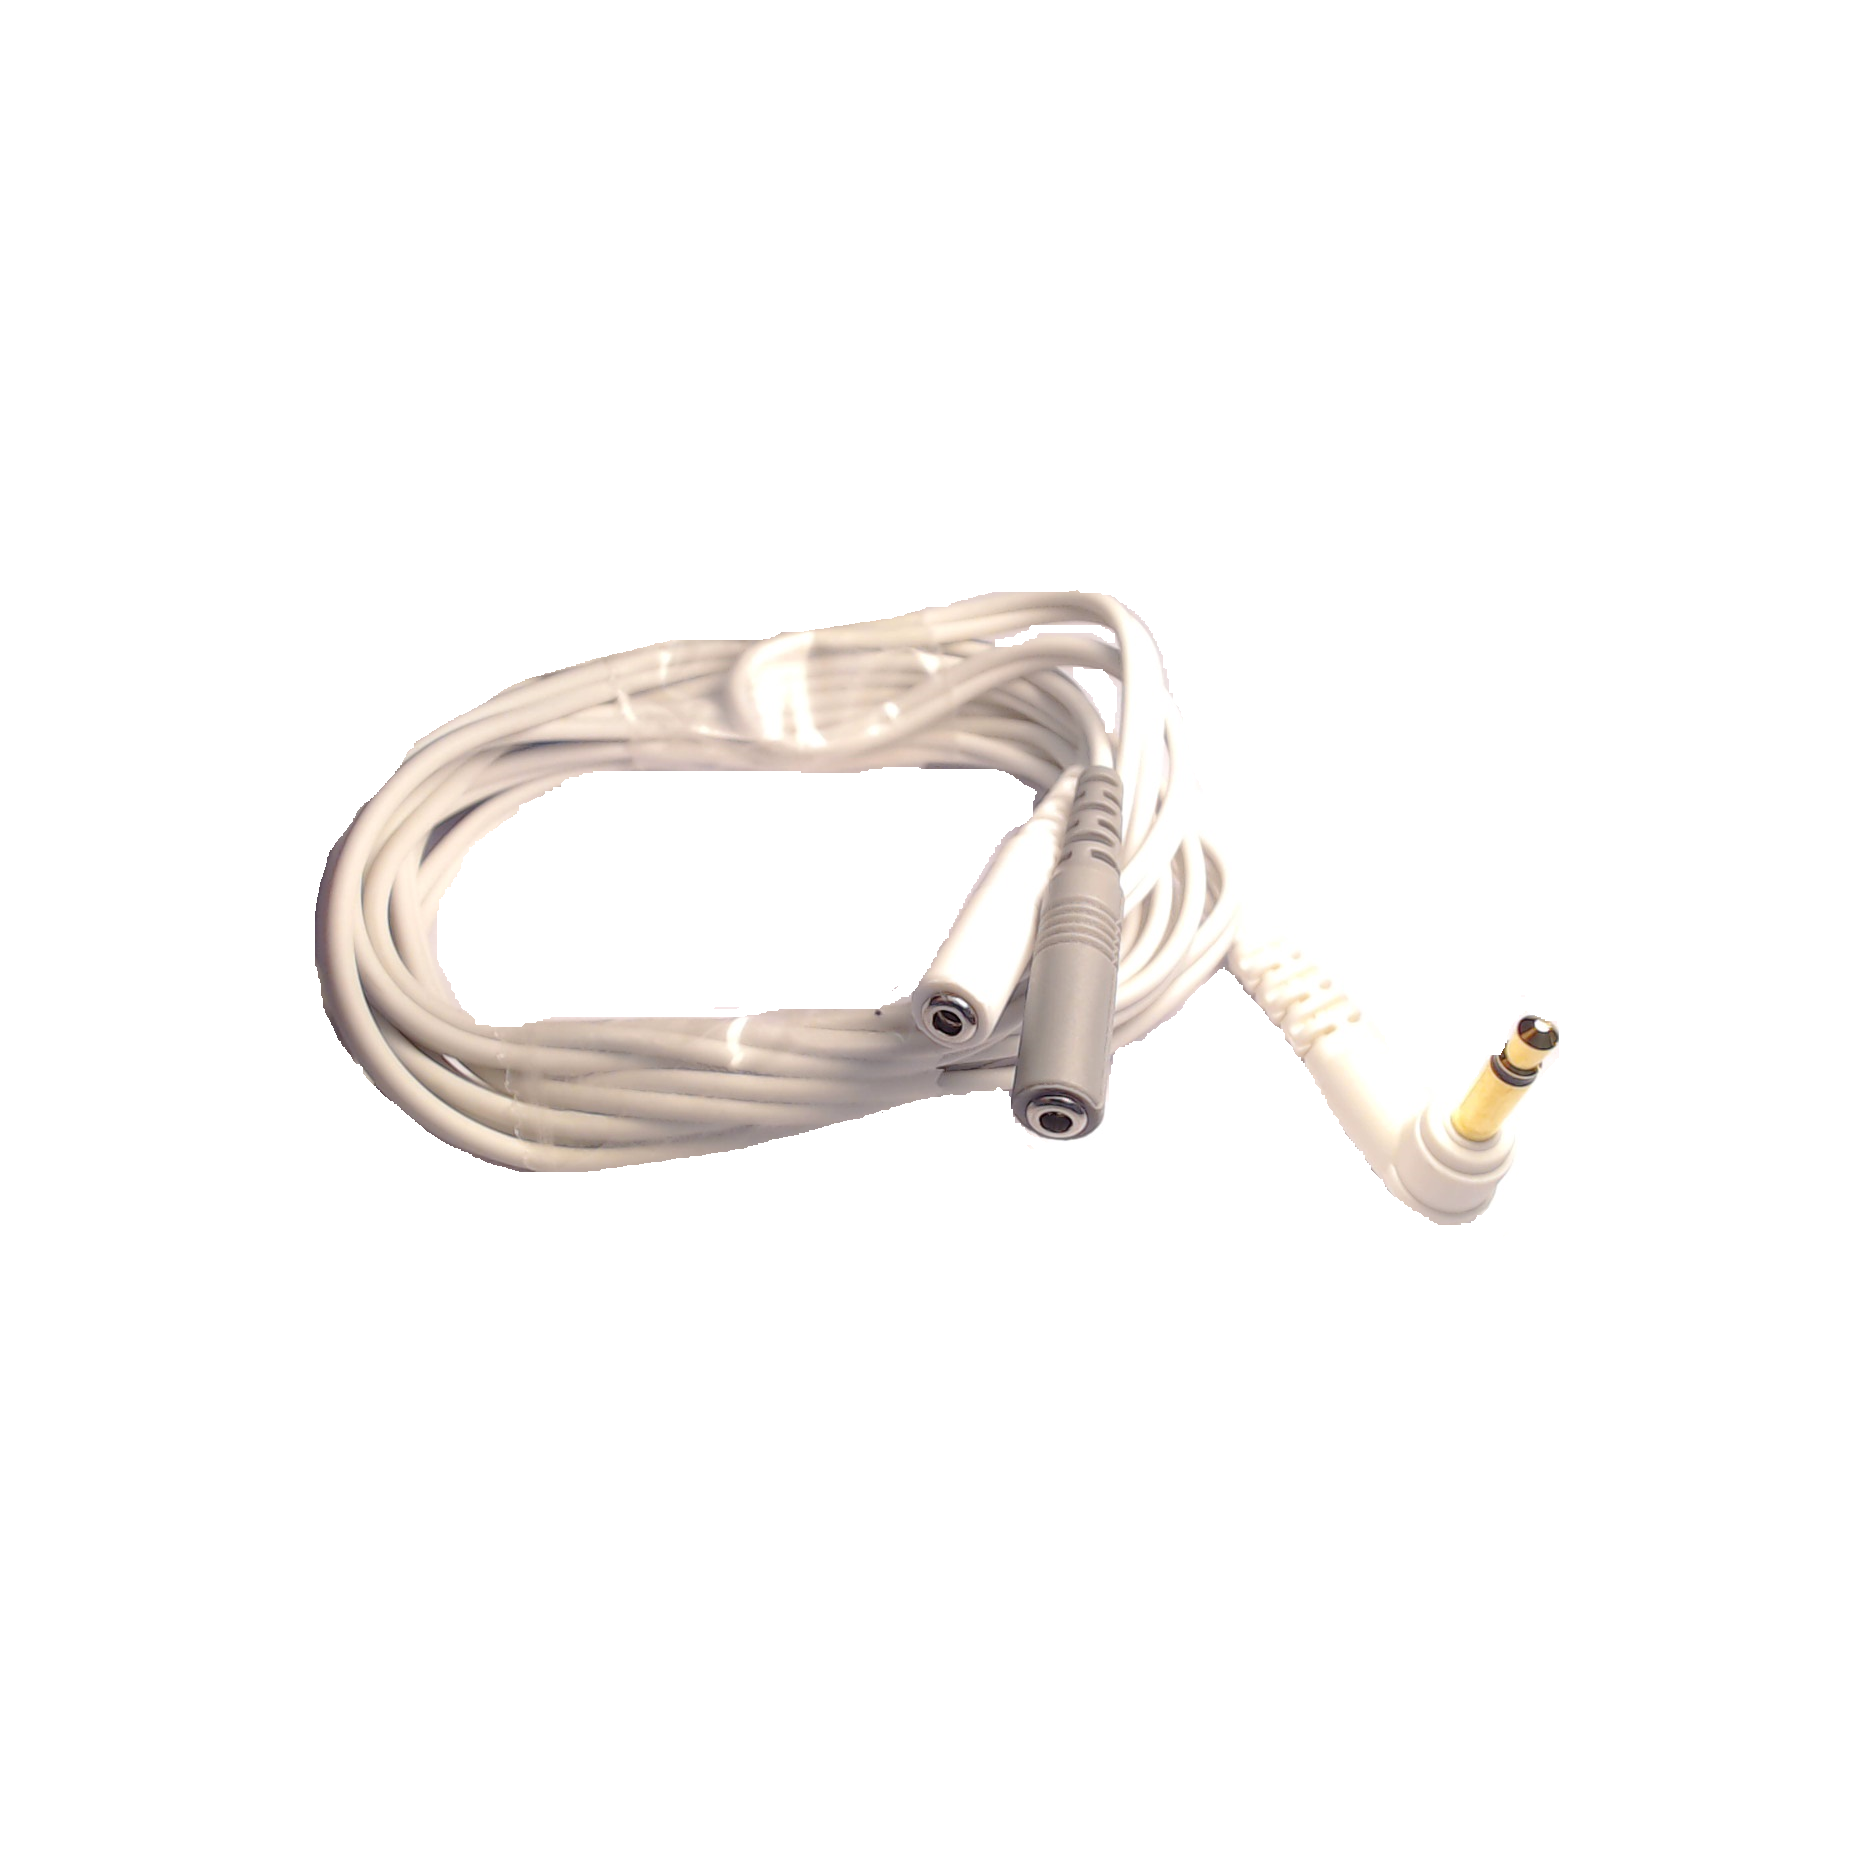 Cable probe para root zx morita ( antiguo)**